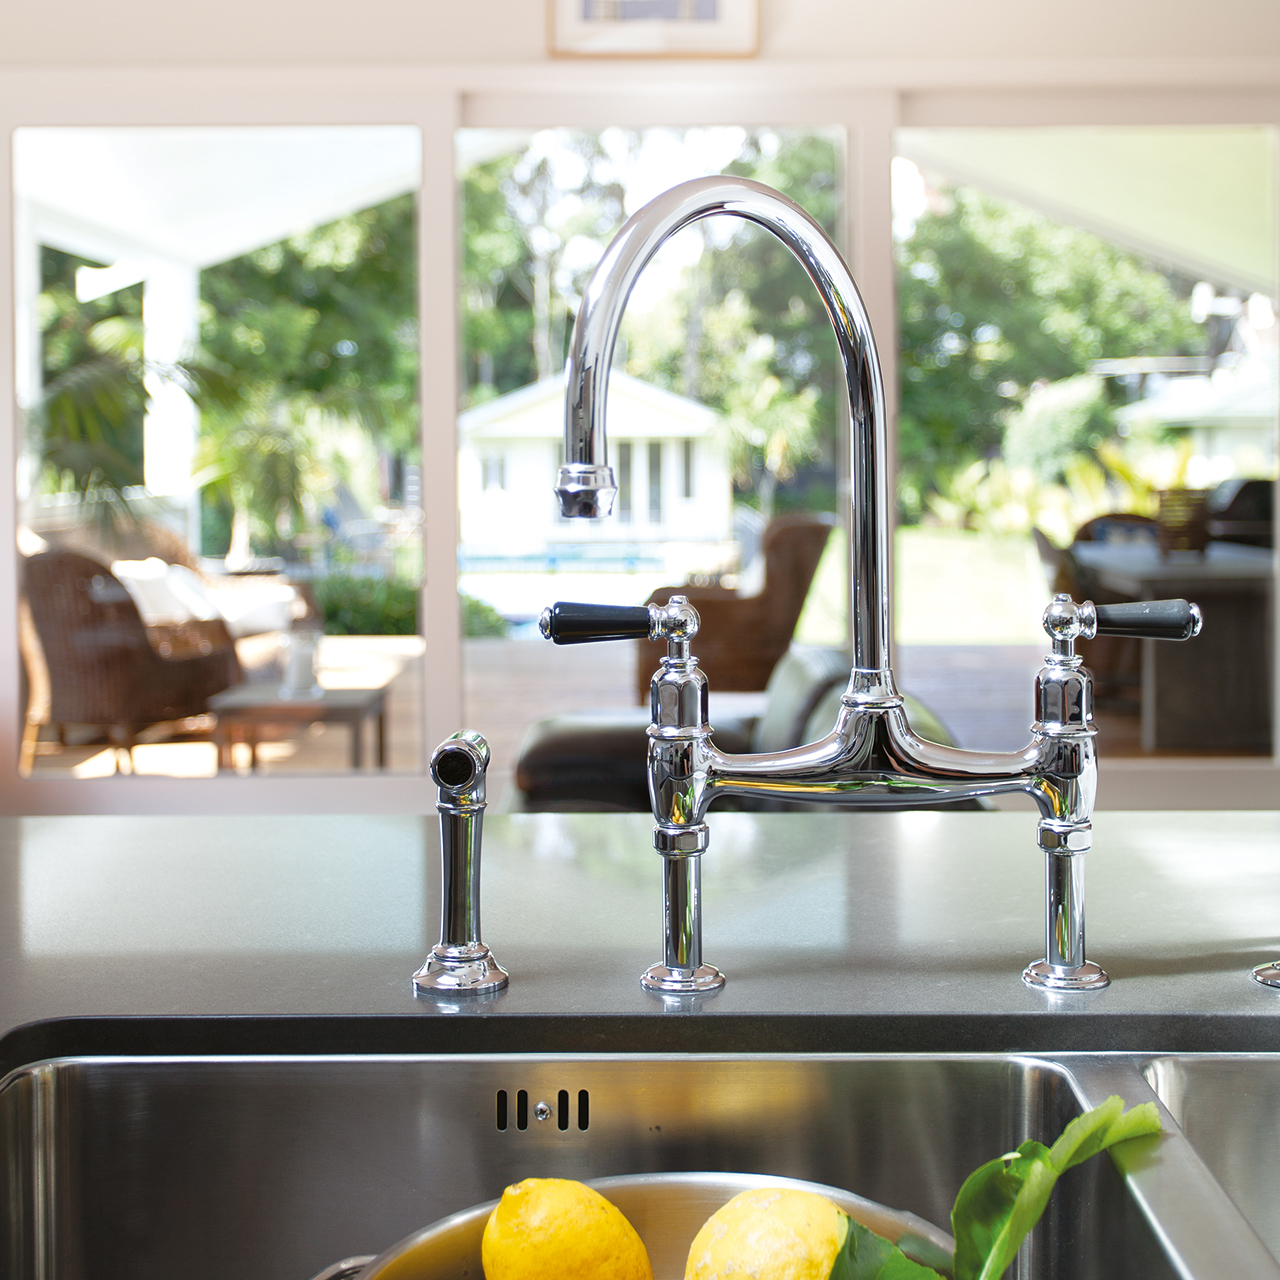 Perrin Rowe Ionian 4173 Tap With Rinse Sinks Taps